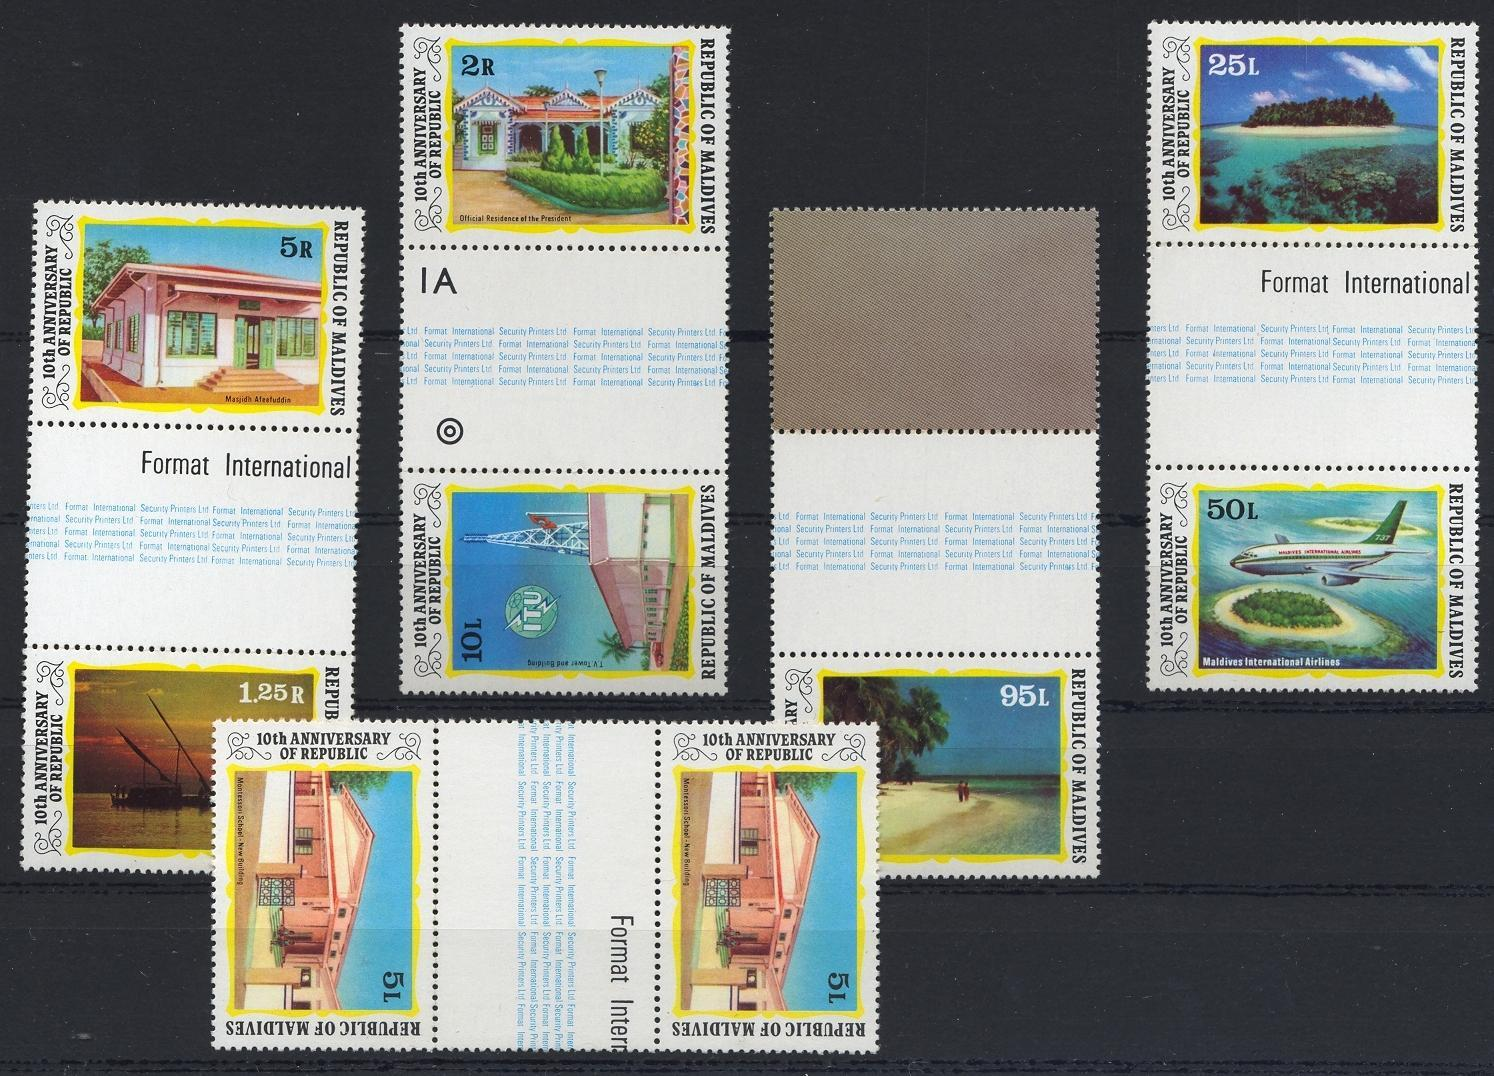 Stamps with Aircraft, Buildings, Ship from Maldives (image for product #032468)